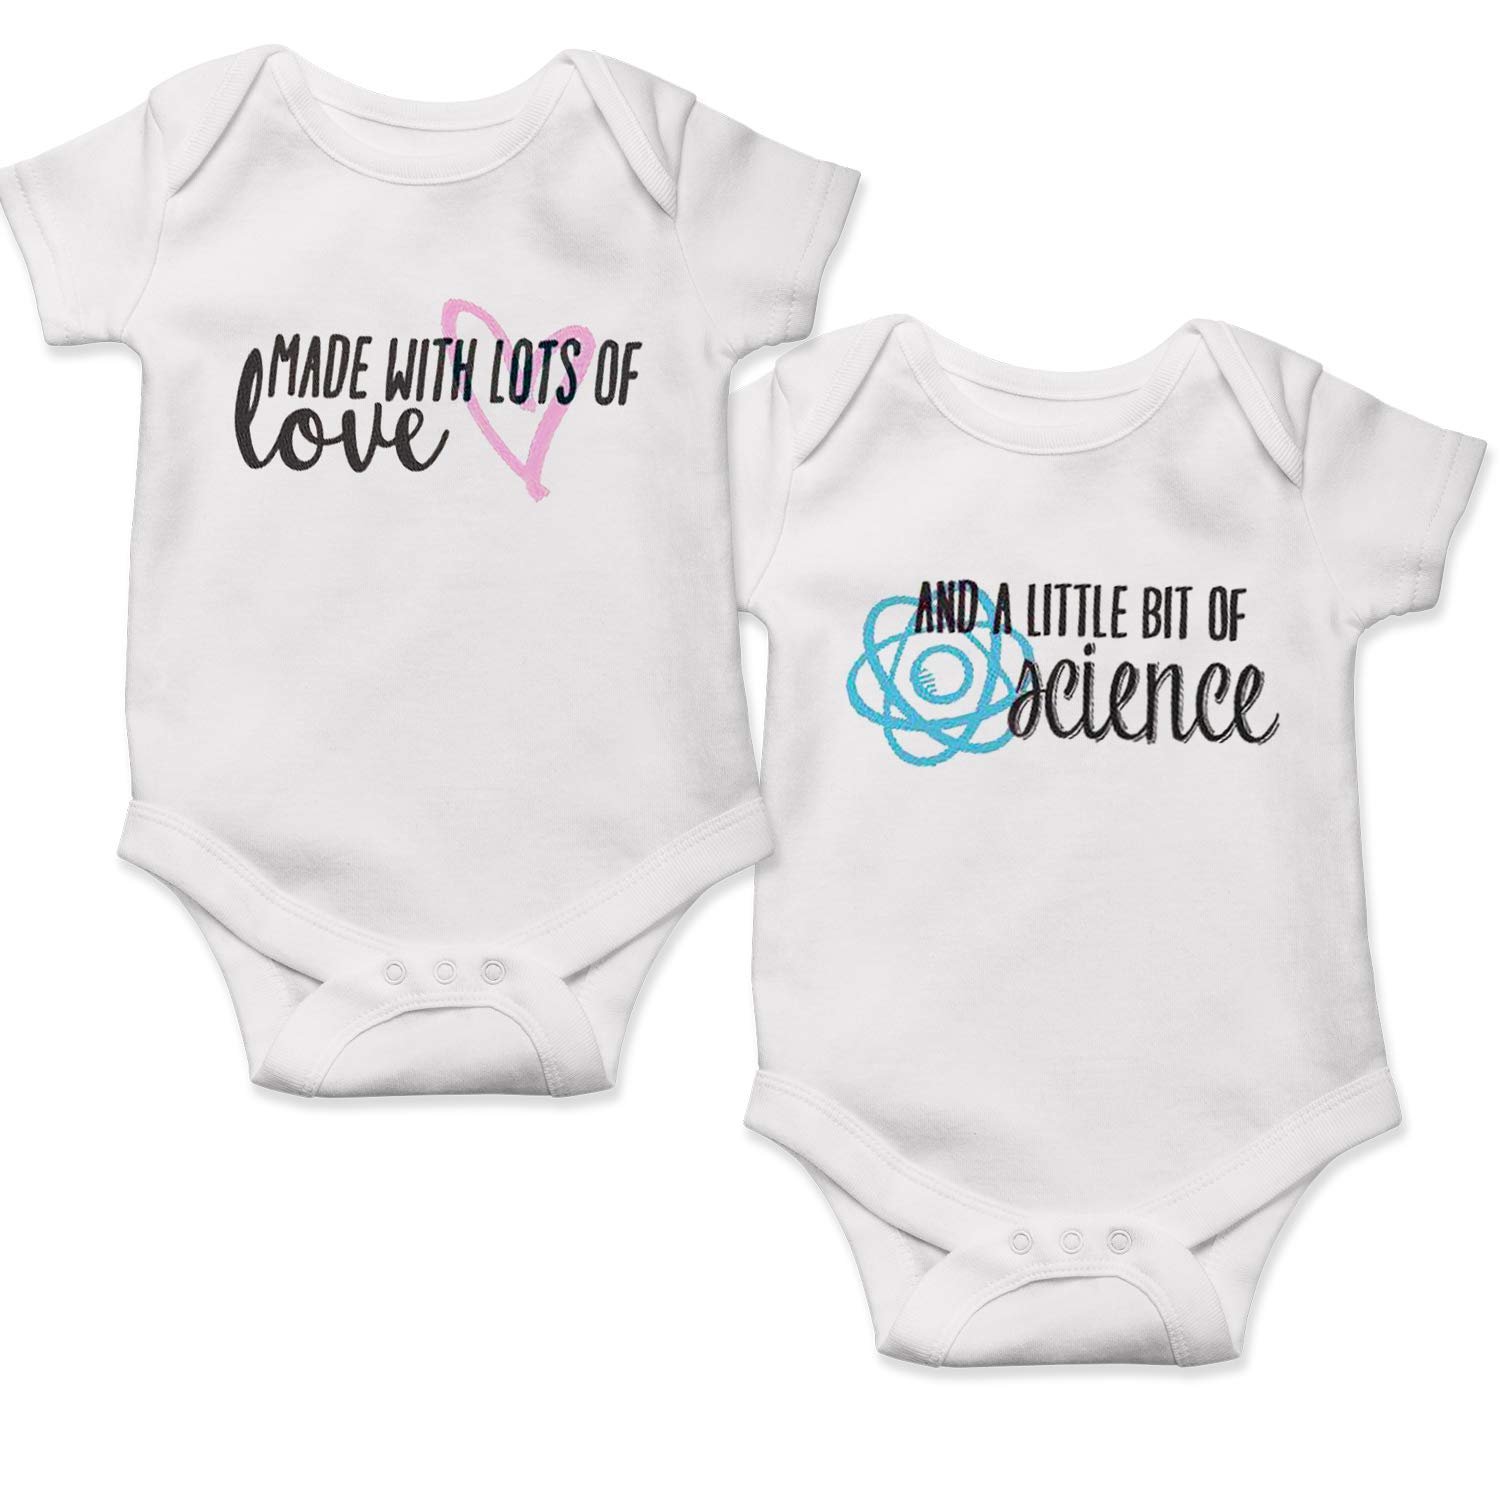 IVF Twin Baby Onesie Clothes Made with Love and Science Outfits Take Home Outfit Iui Babies Rainbow in Vitro Twins